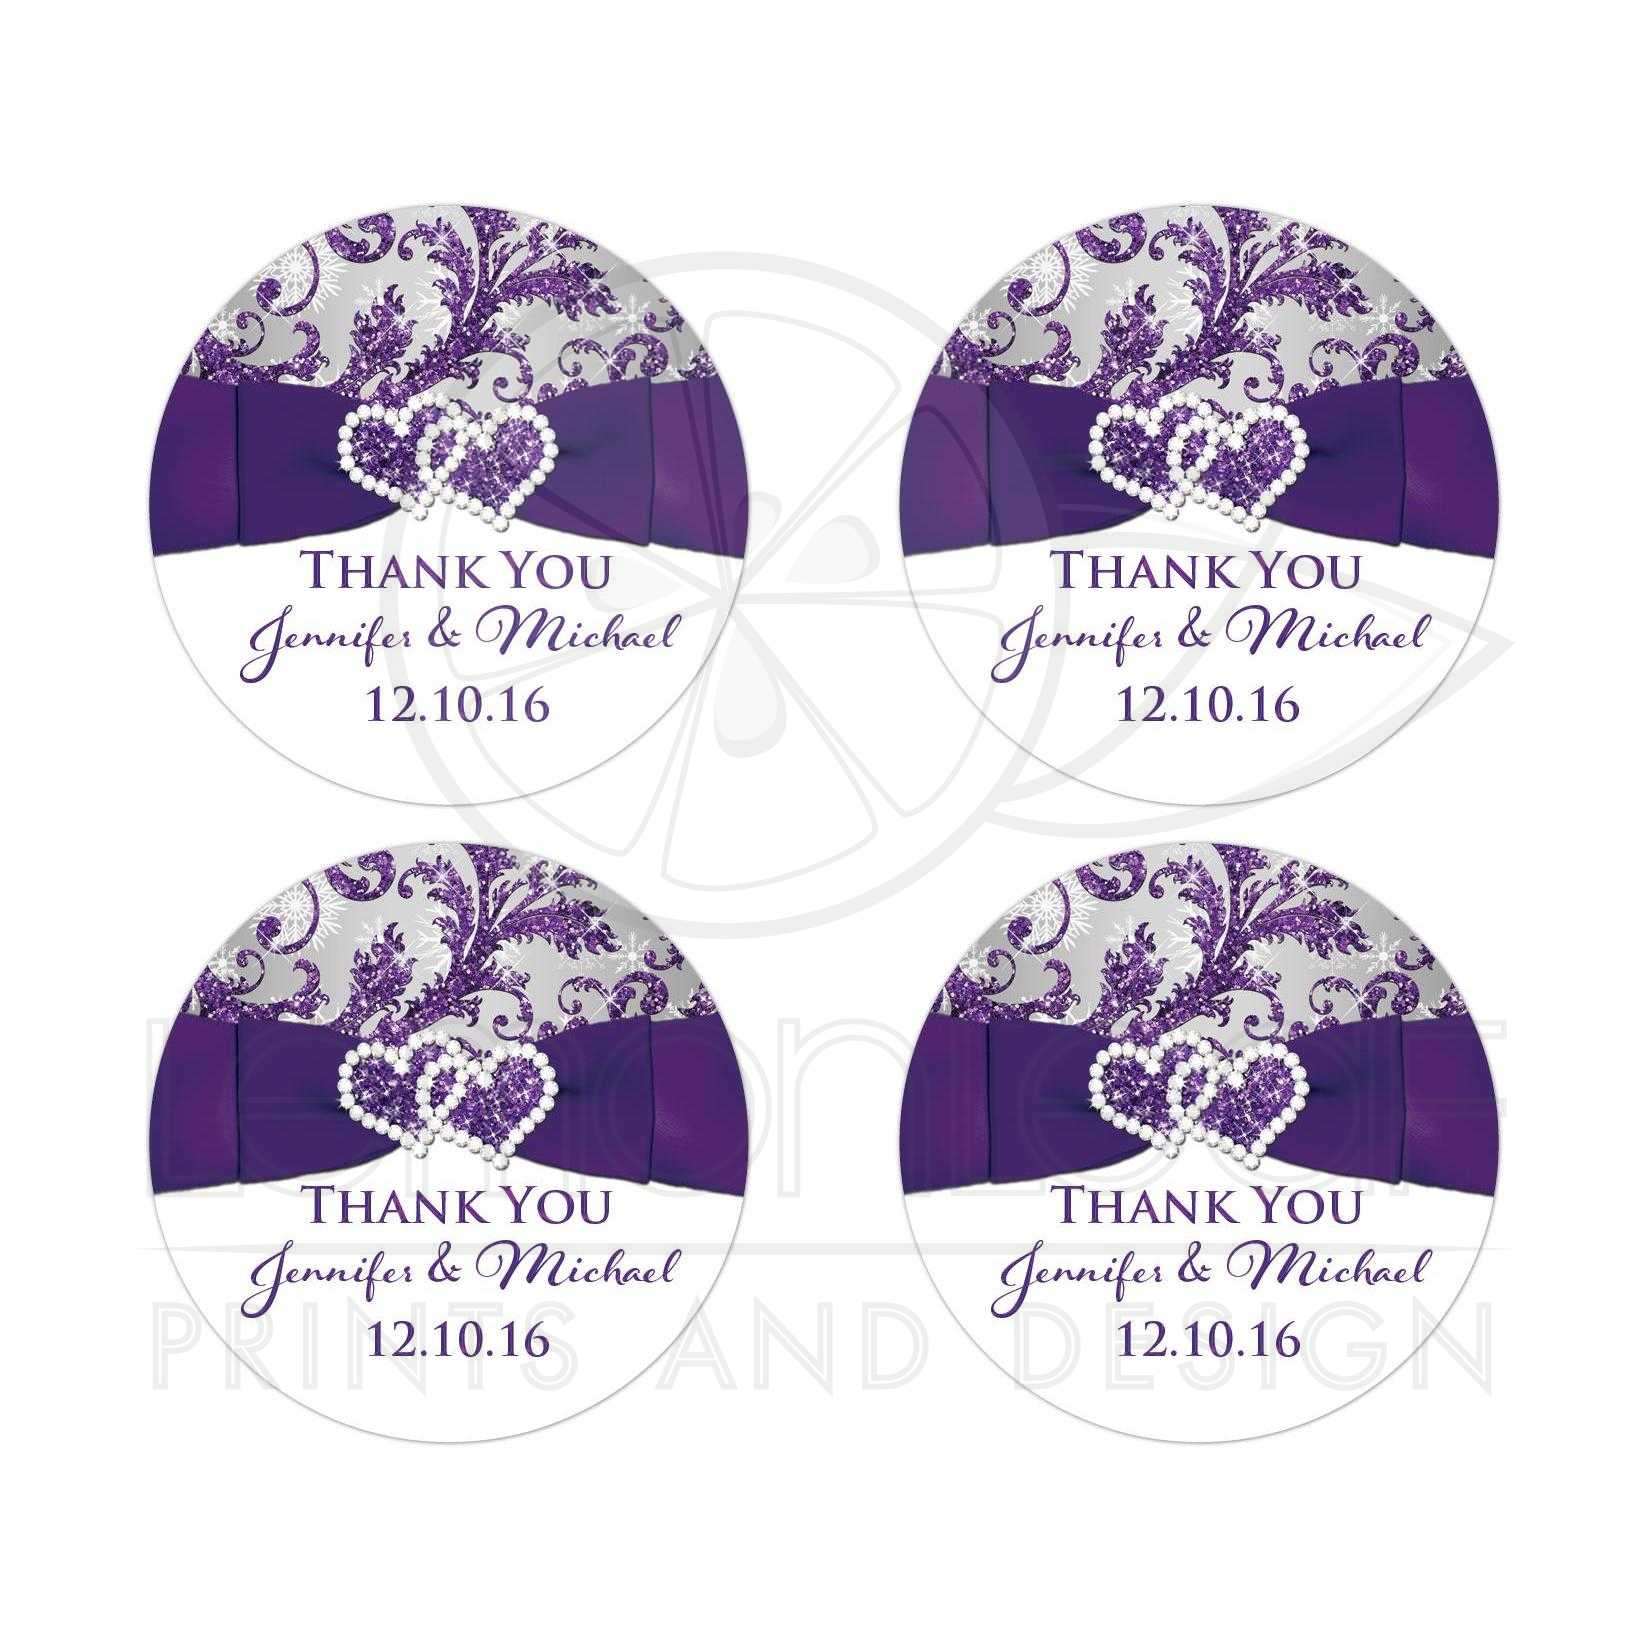 Personalized Wedding Favor Sticker | Purple, Silver, White ...